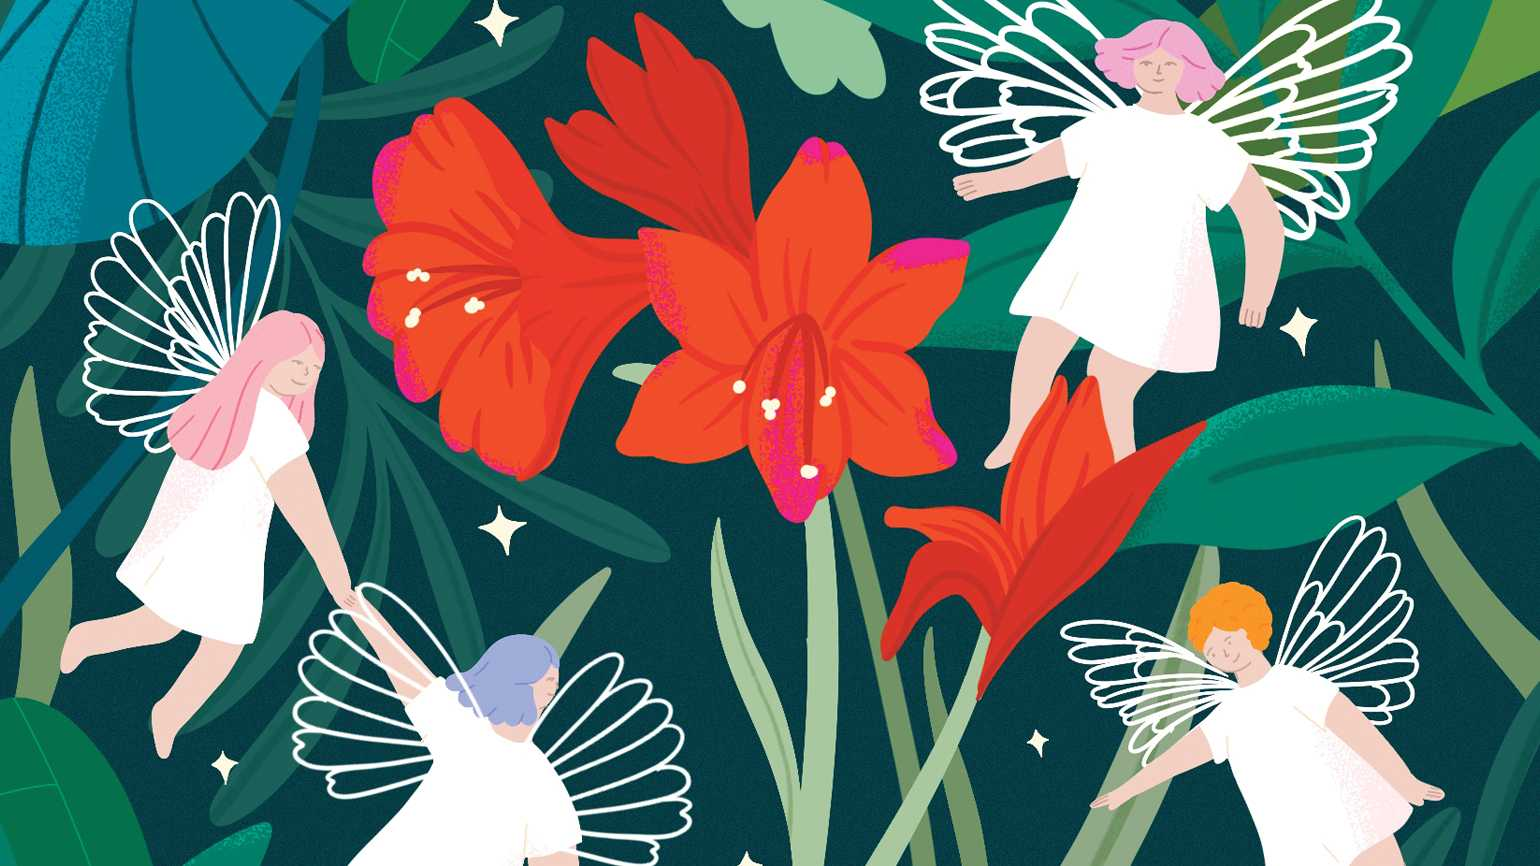 Four angels surrounding red flowers; Illustration by Lucila Perini